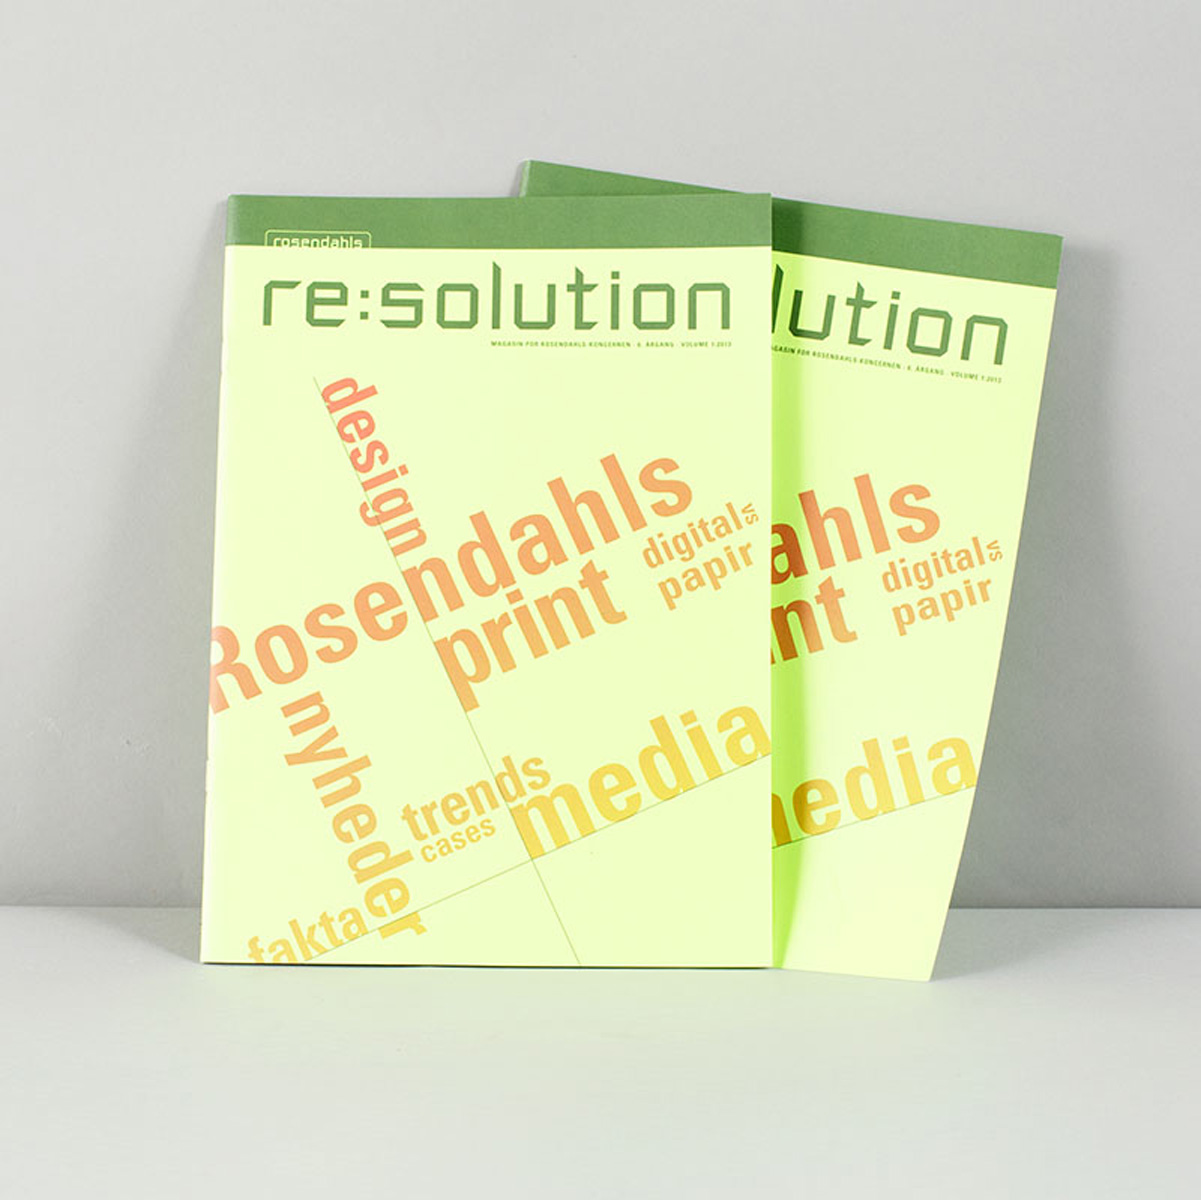 Rosendahls Re:solution - Magazin